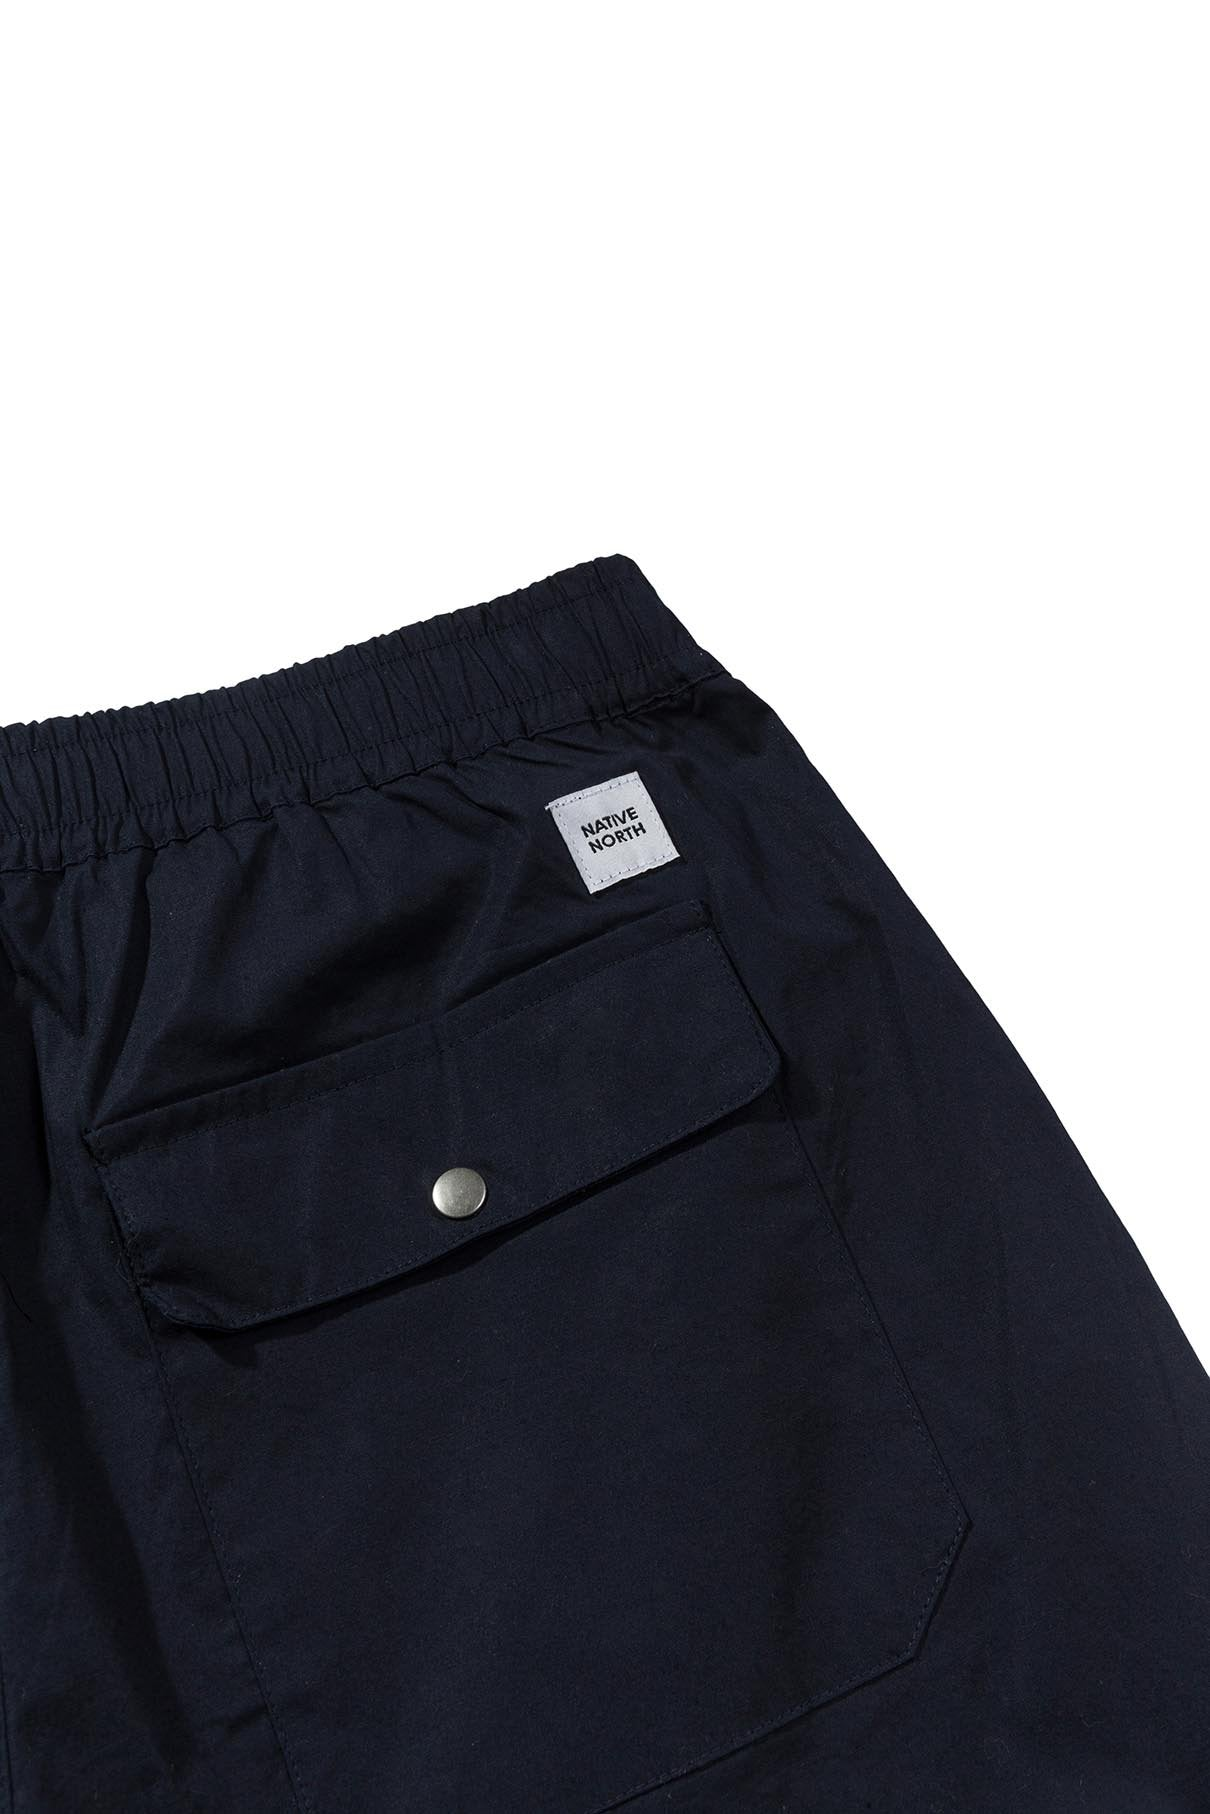 Native North - Paper Shorts